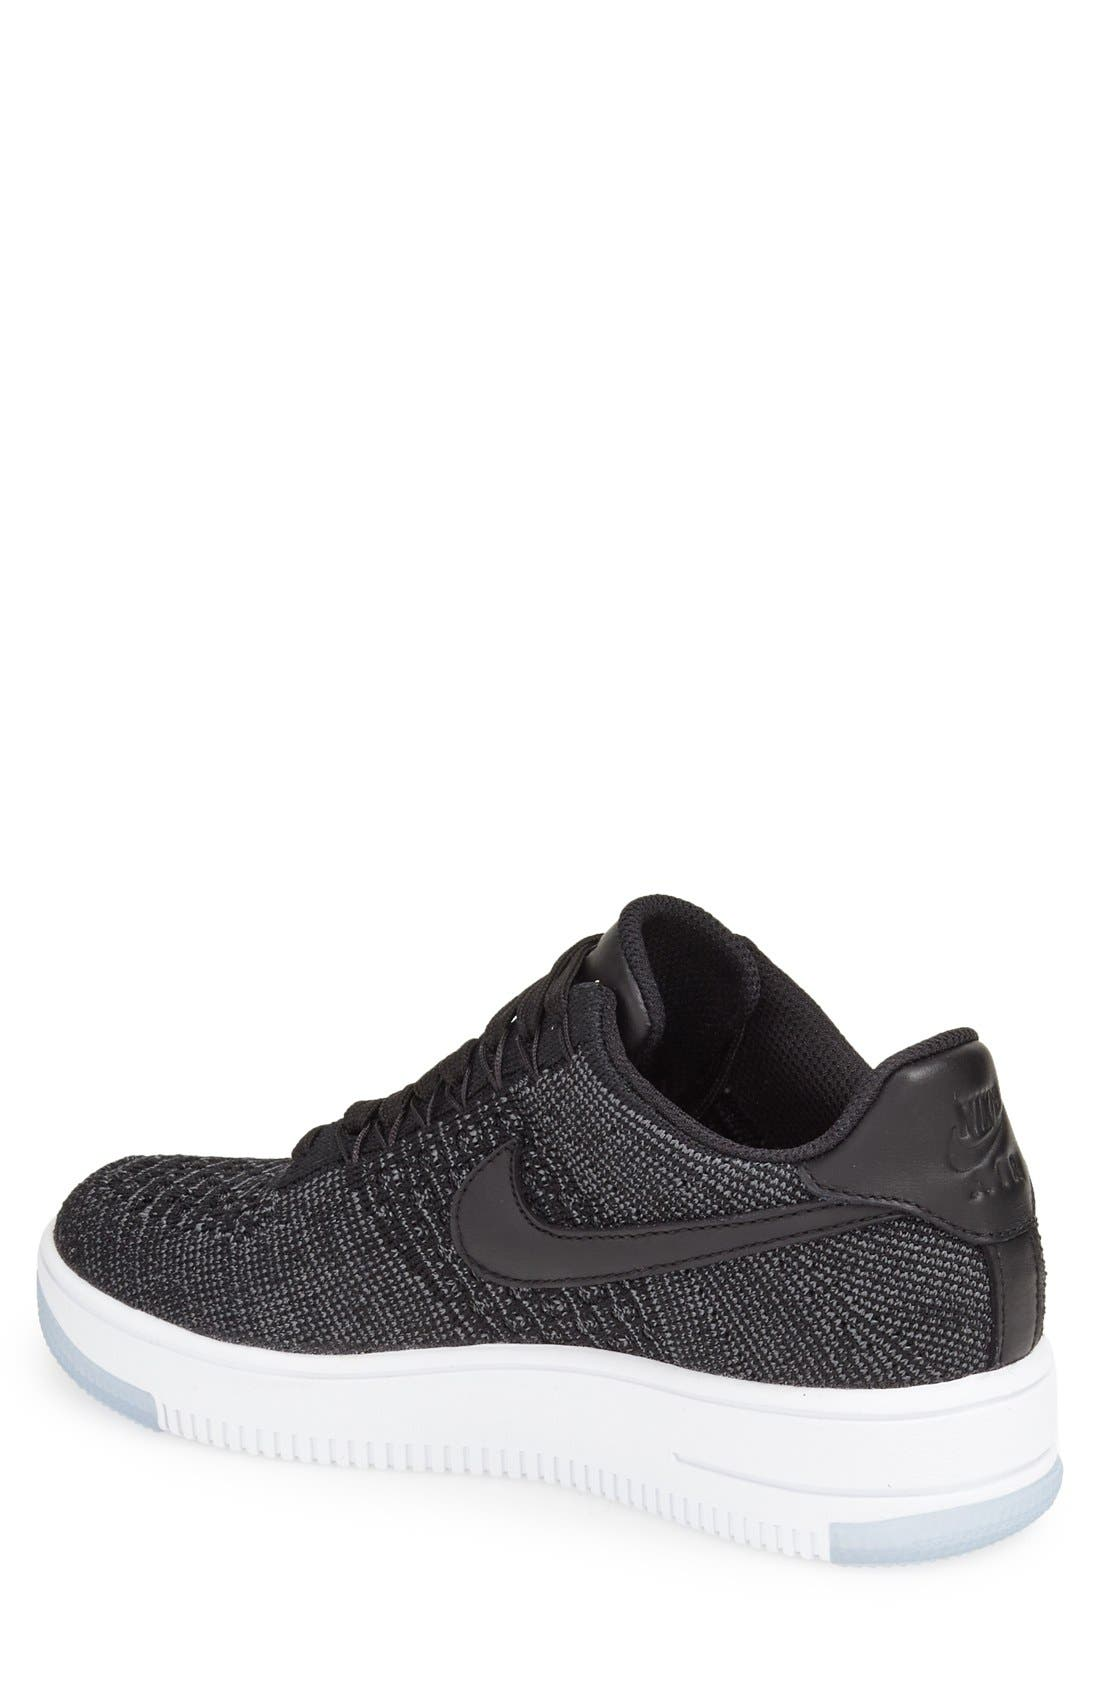 'Air Force 1 Flyknit Low' Sneaker,                             Alternate thumbnail 2, color,                             Black/ Black/ White